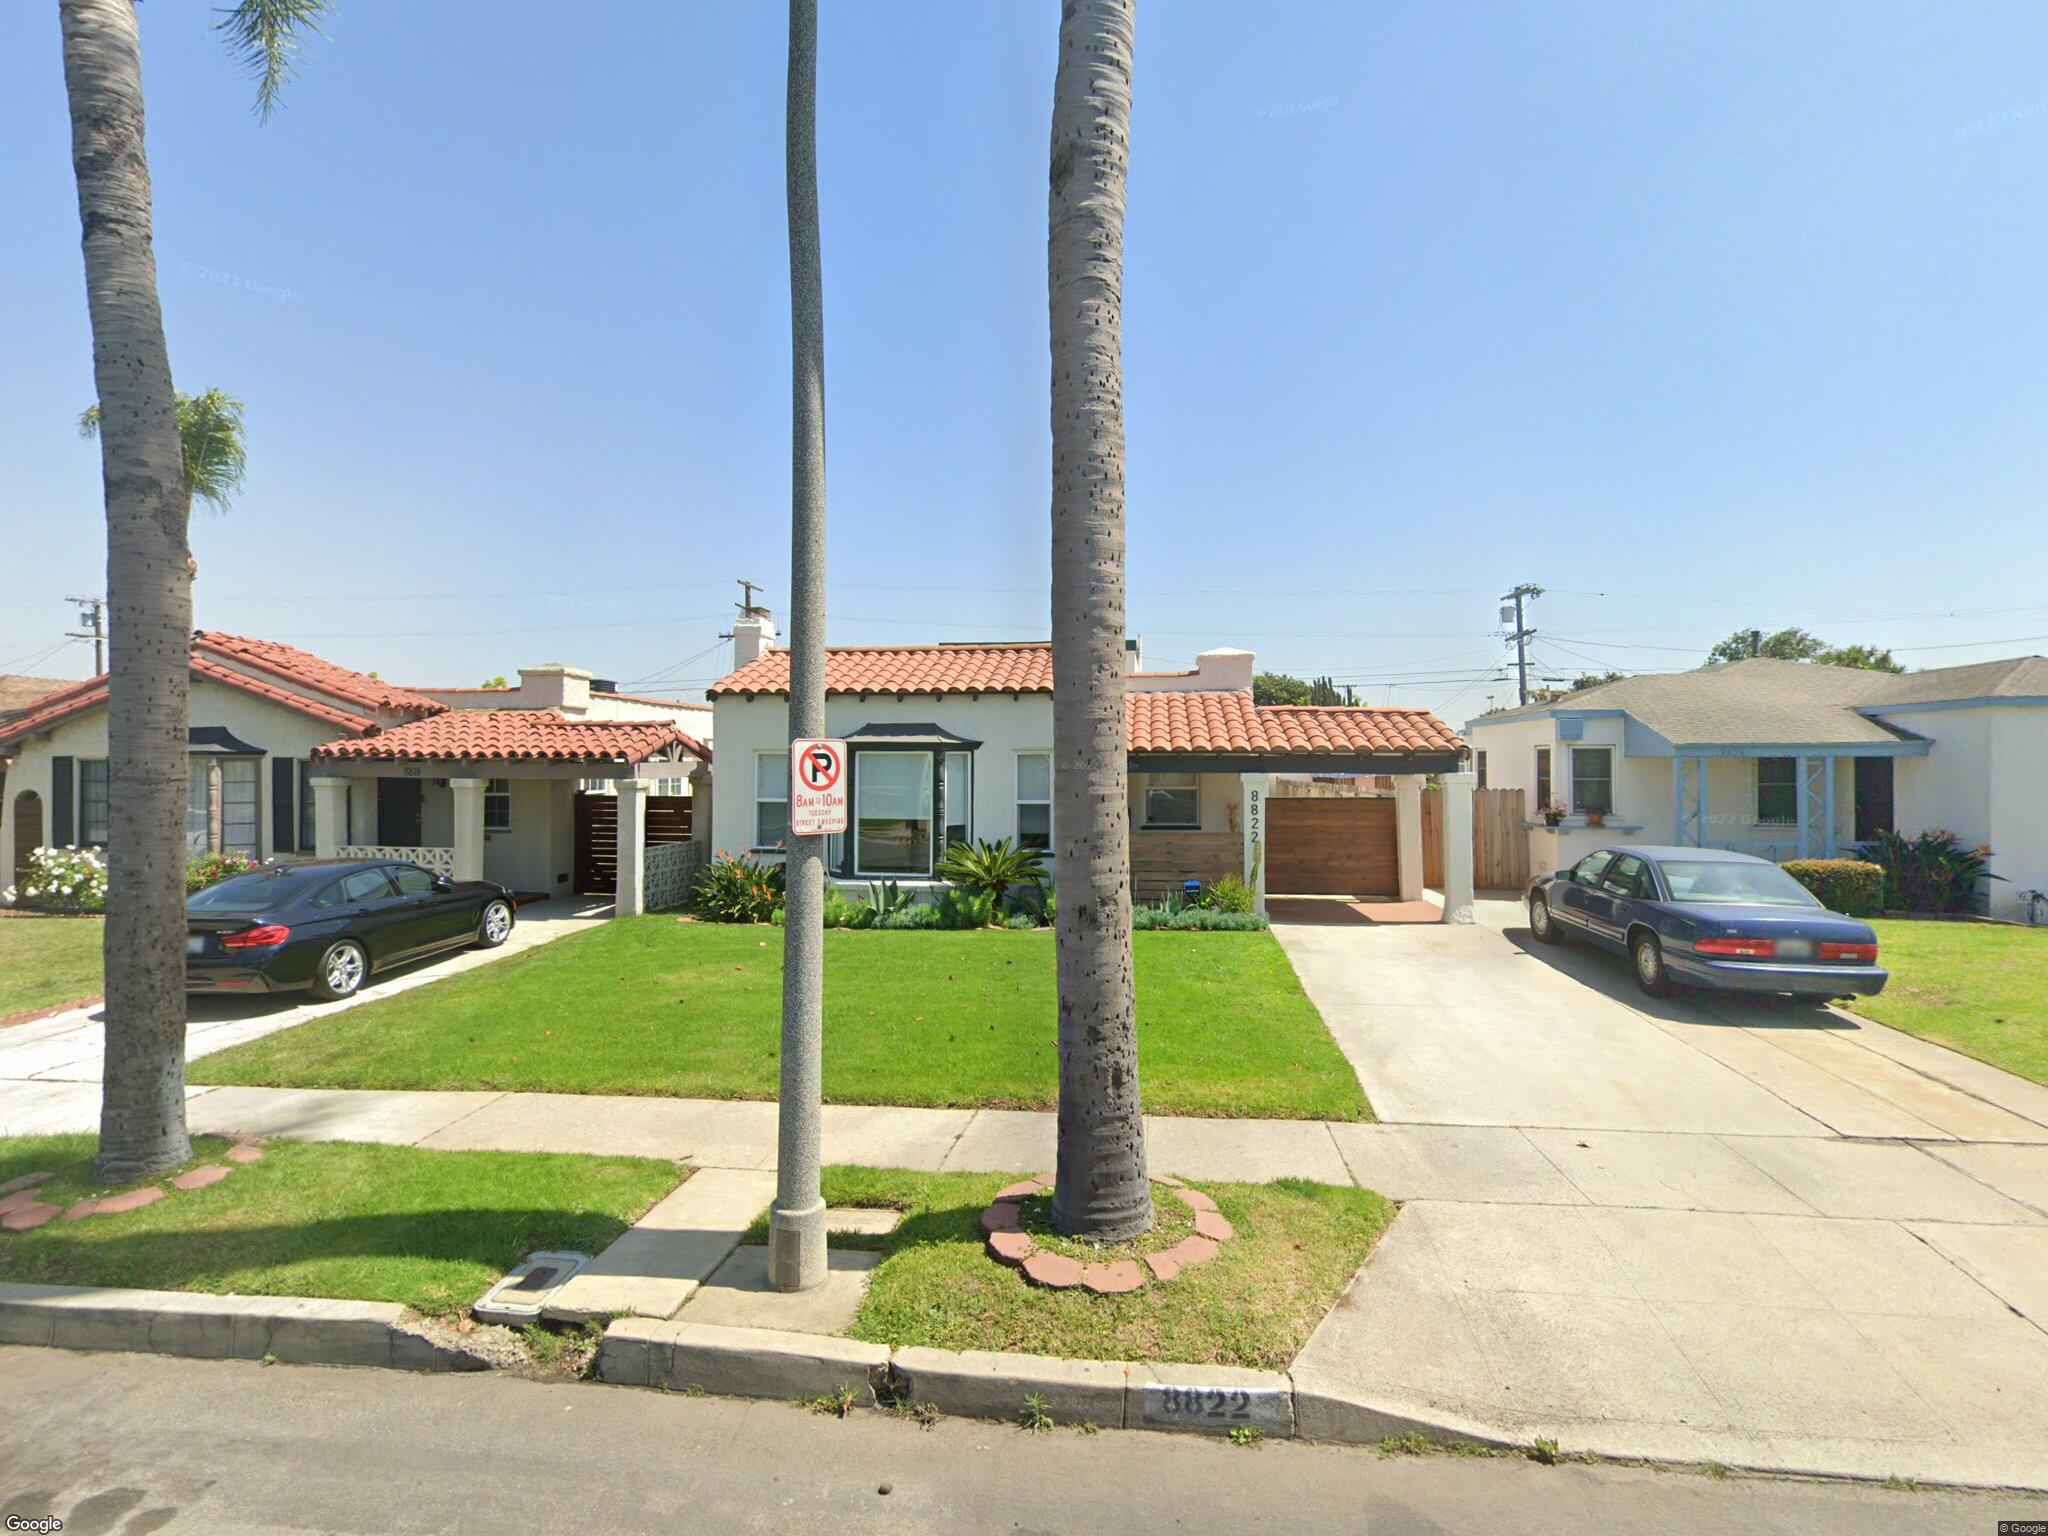 90047 Zip Code Map.8822 S Wilton Pl Los Angeles Ca 90047 Foreclosure Trulia